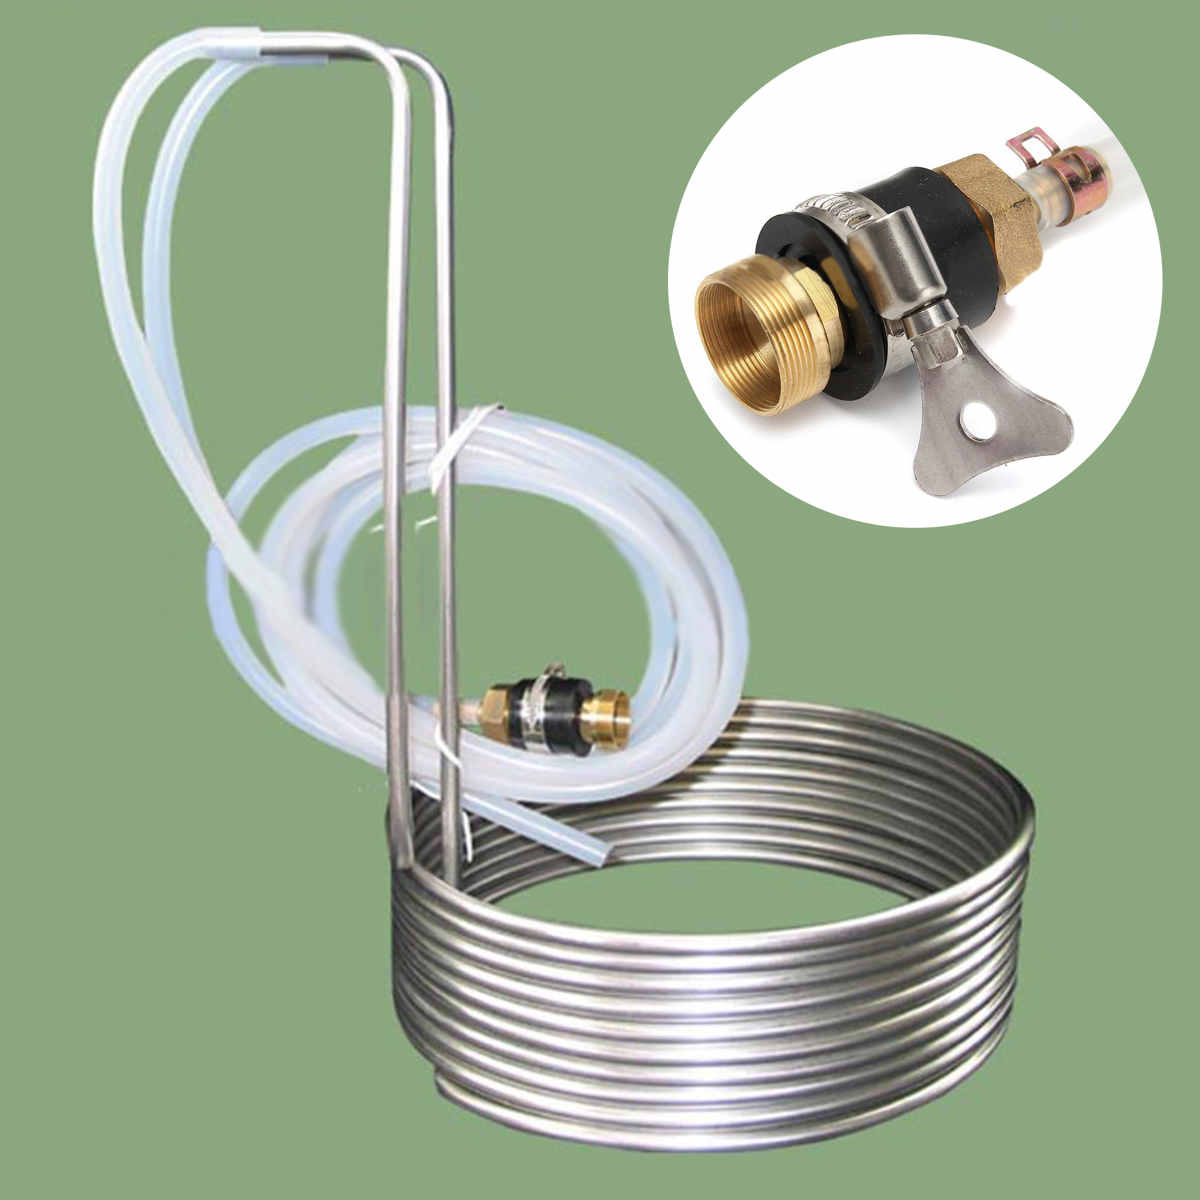 304 Stainless Steel Immersion Wort Chiller Tube Home Brewing Super Efficient Wort Chiller Home Wine Making Machine Part New304 Stainless Steel Immersion Wort Chiller Tube Home Brewing Super Efficient Wort Chiller Home Wine Making Machine Part New